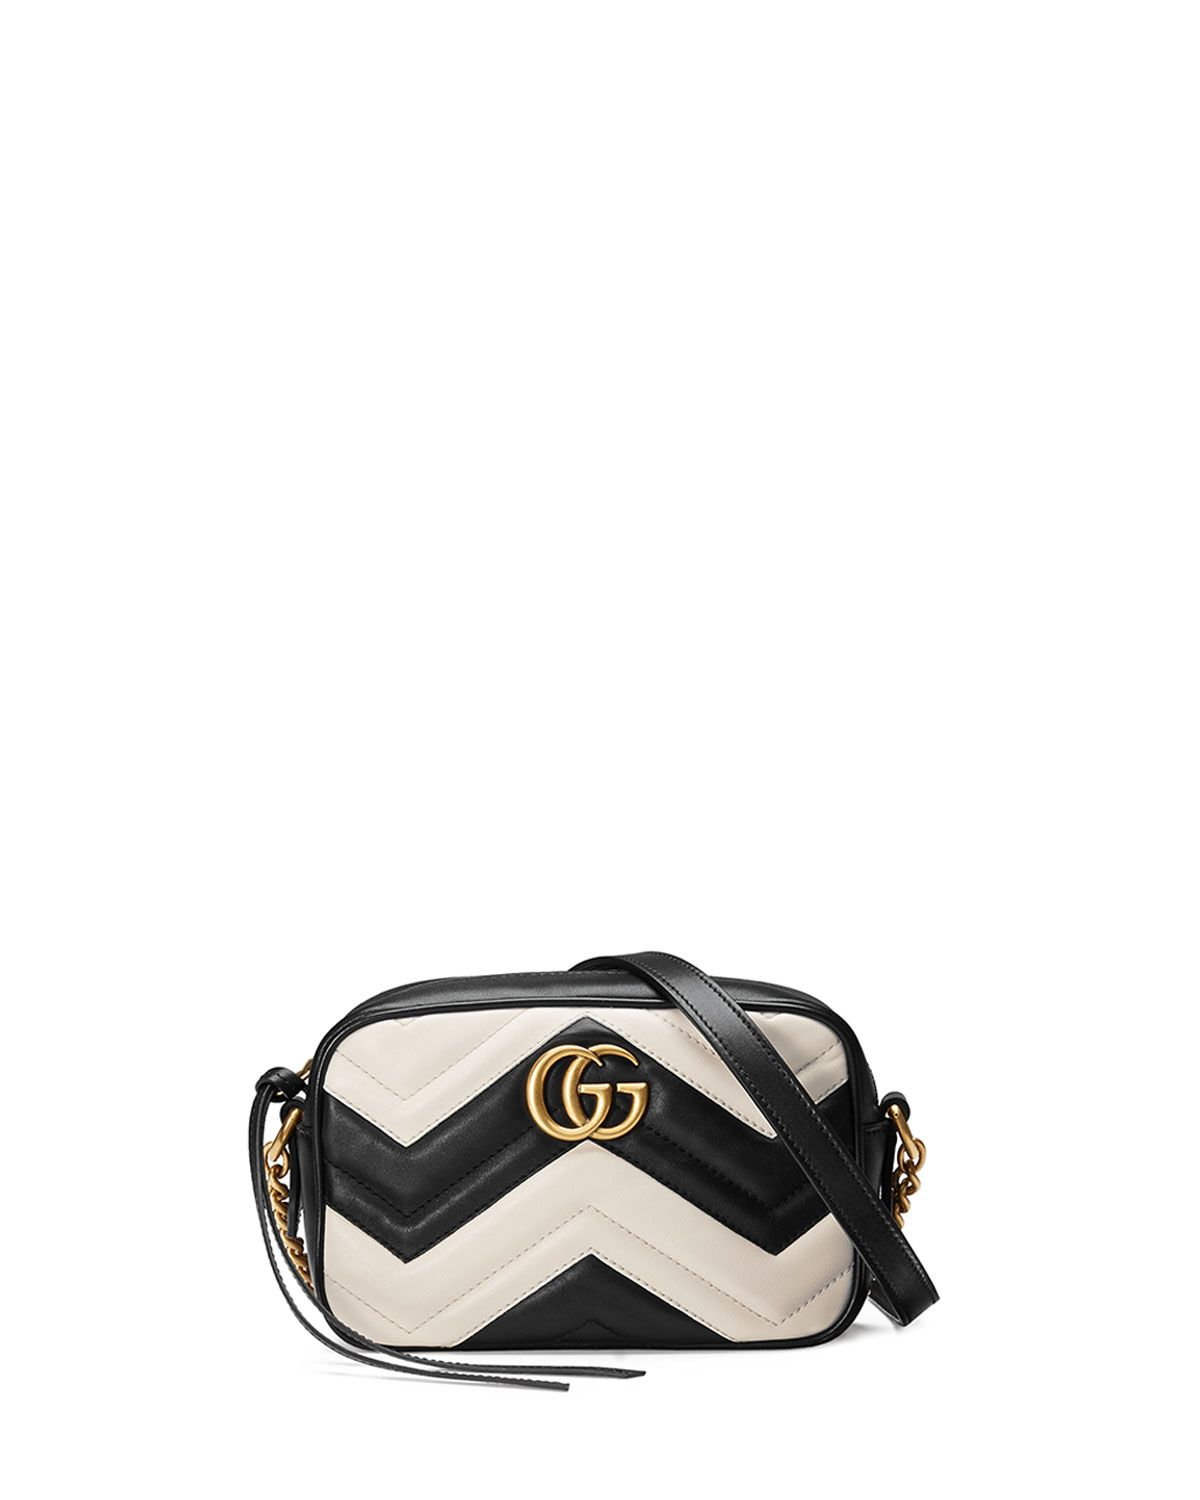 18559f88867e GG Marmont Mini Matelassé Camera Bag Black/White in 2019 | Bags whoa ...